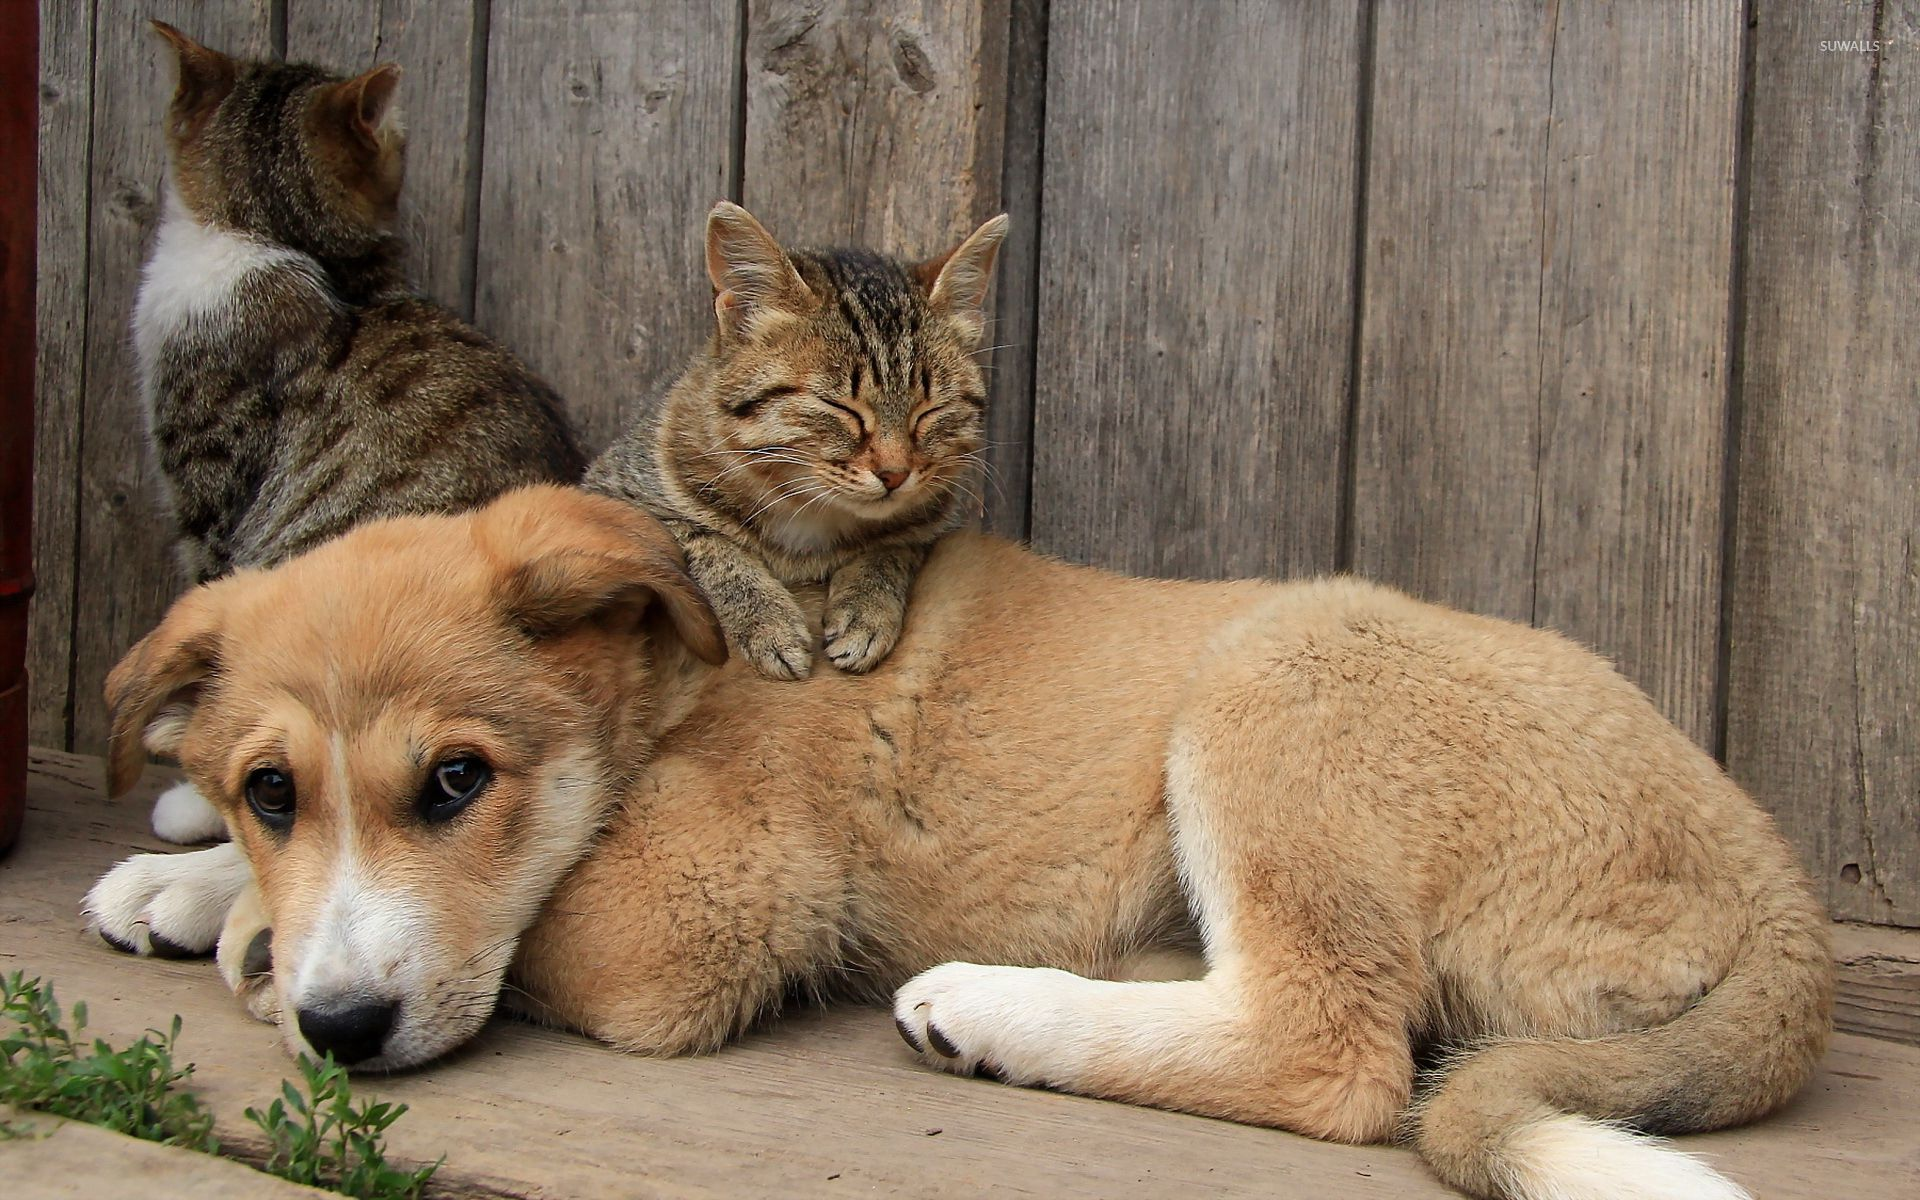 How to Make a Cat and Dog Get Along Thinking of getting a dog but afraid your cat wont like it Have a cat and a dog but the two just wont stop fighting